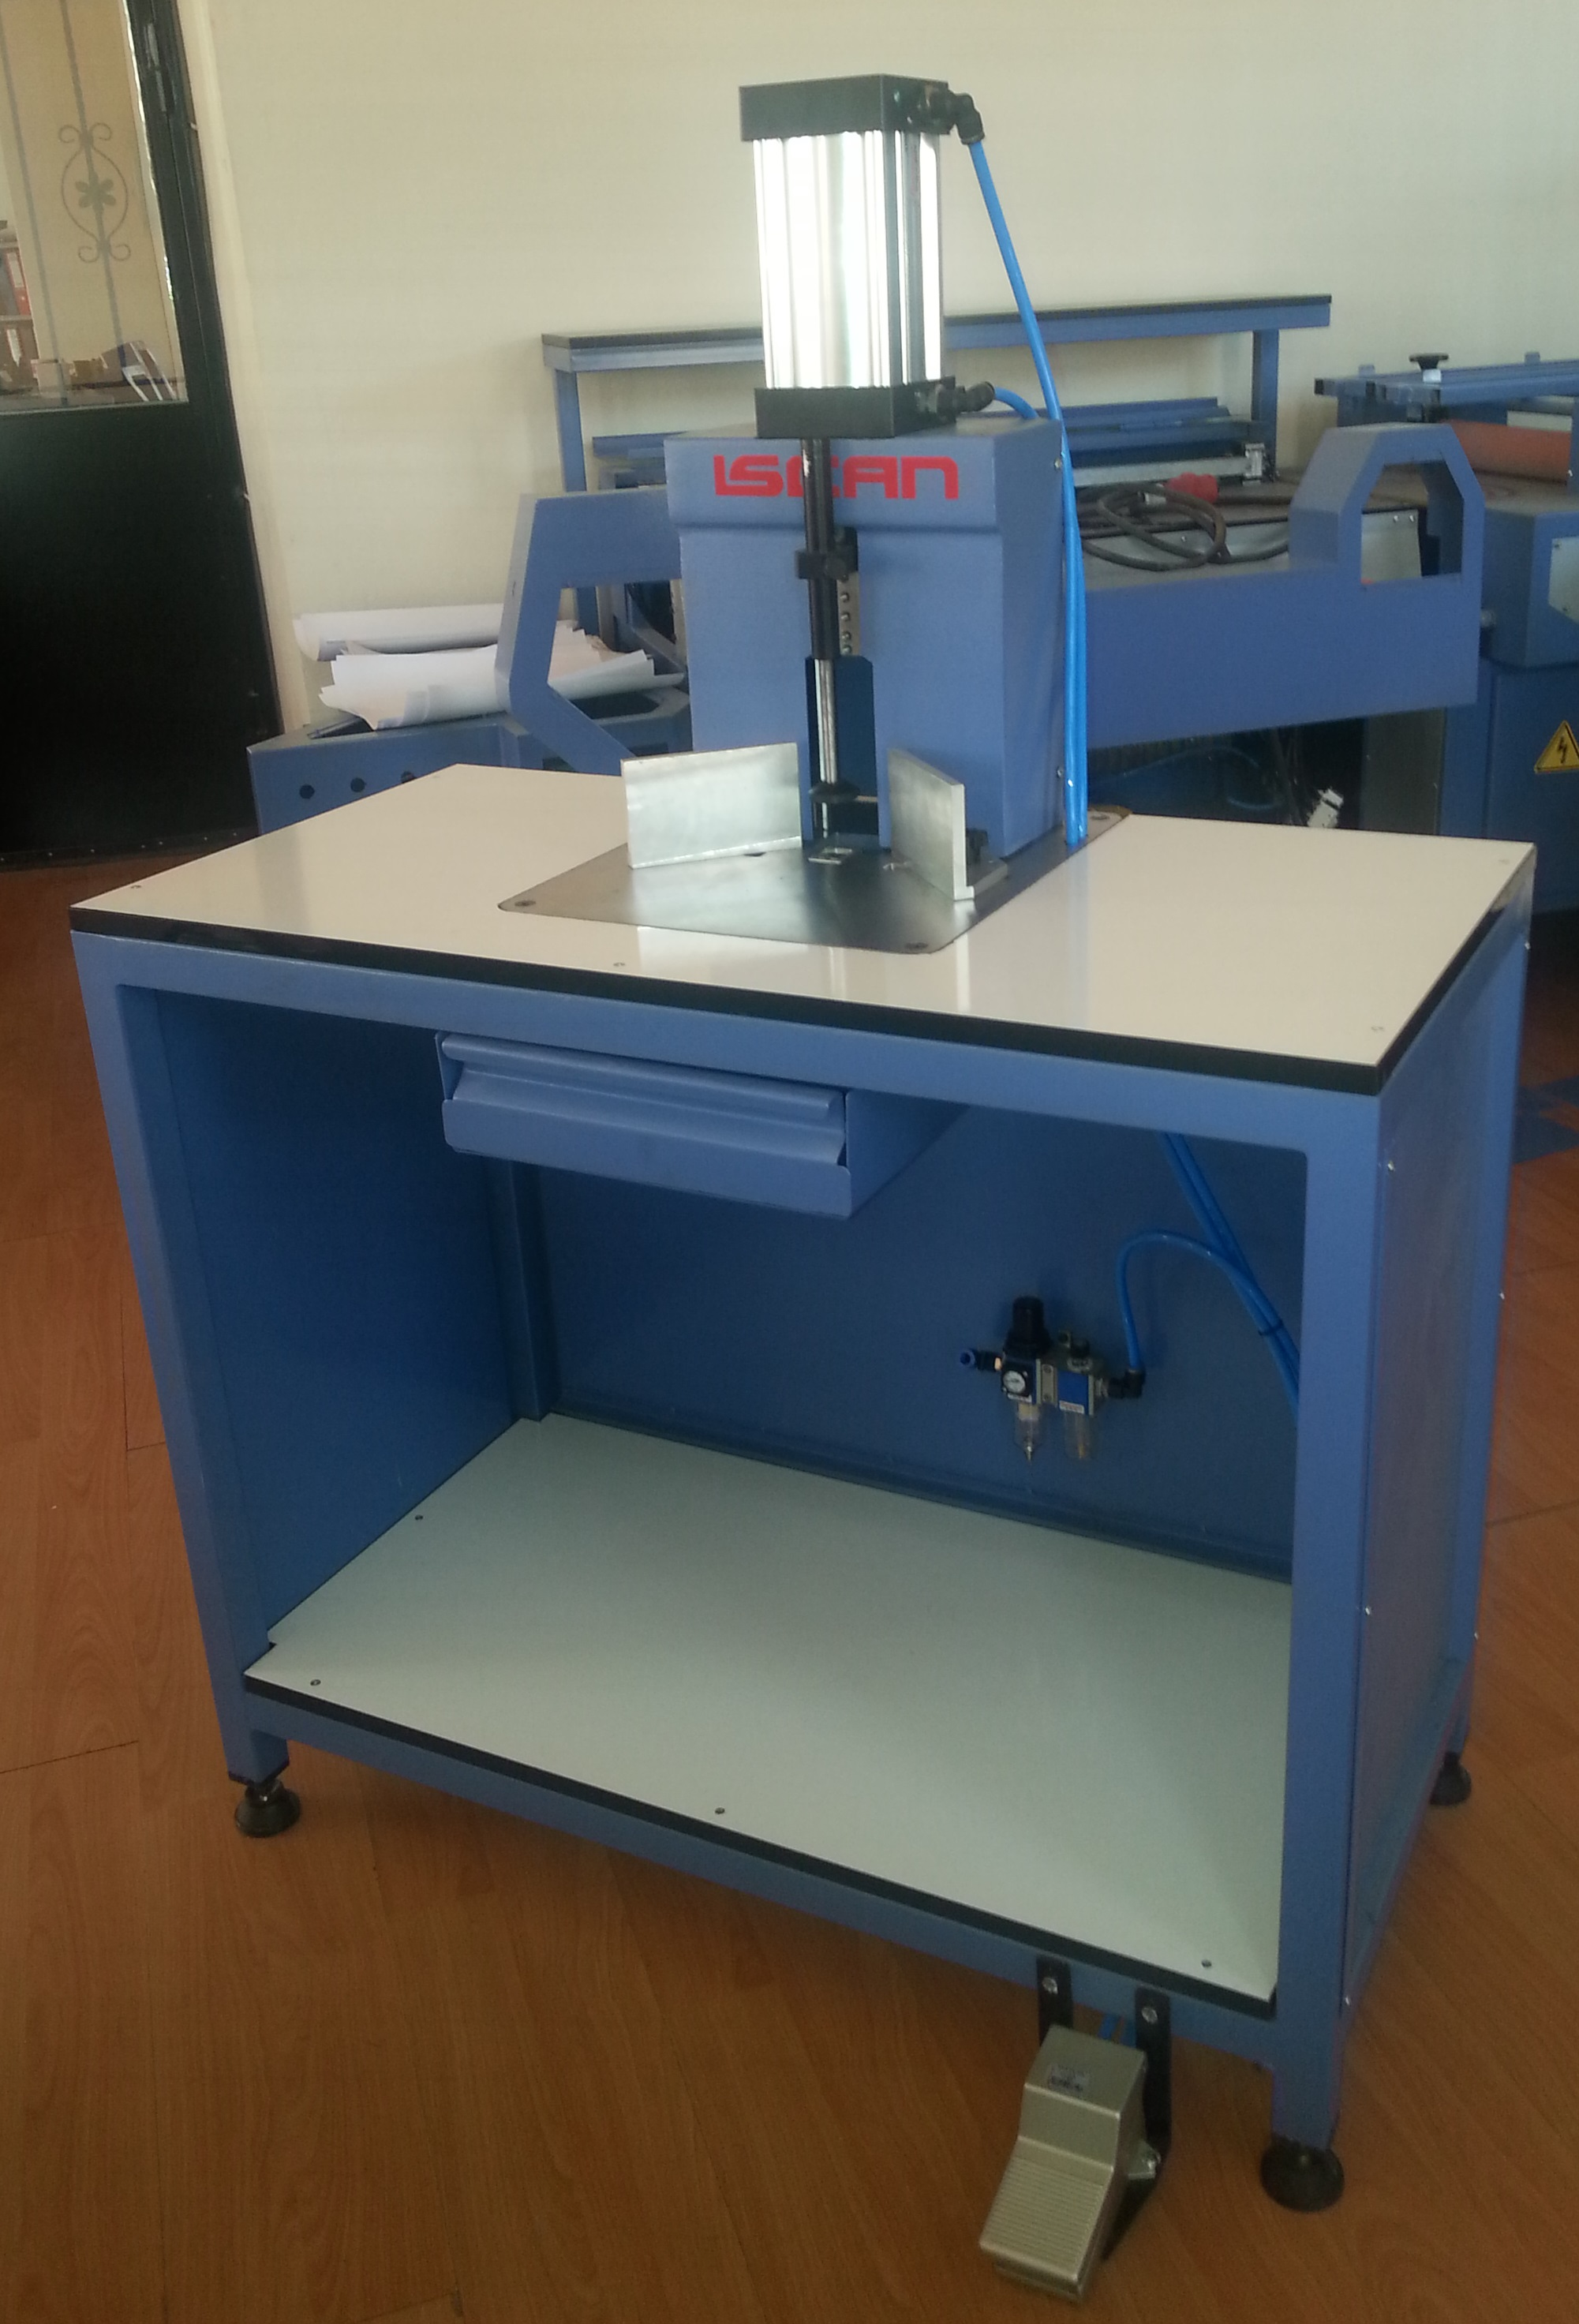 pnaumatic corner cutting machine